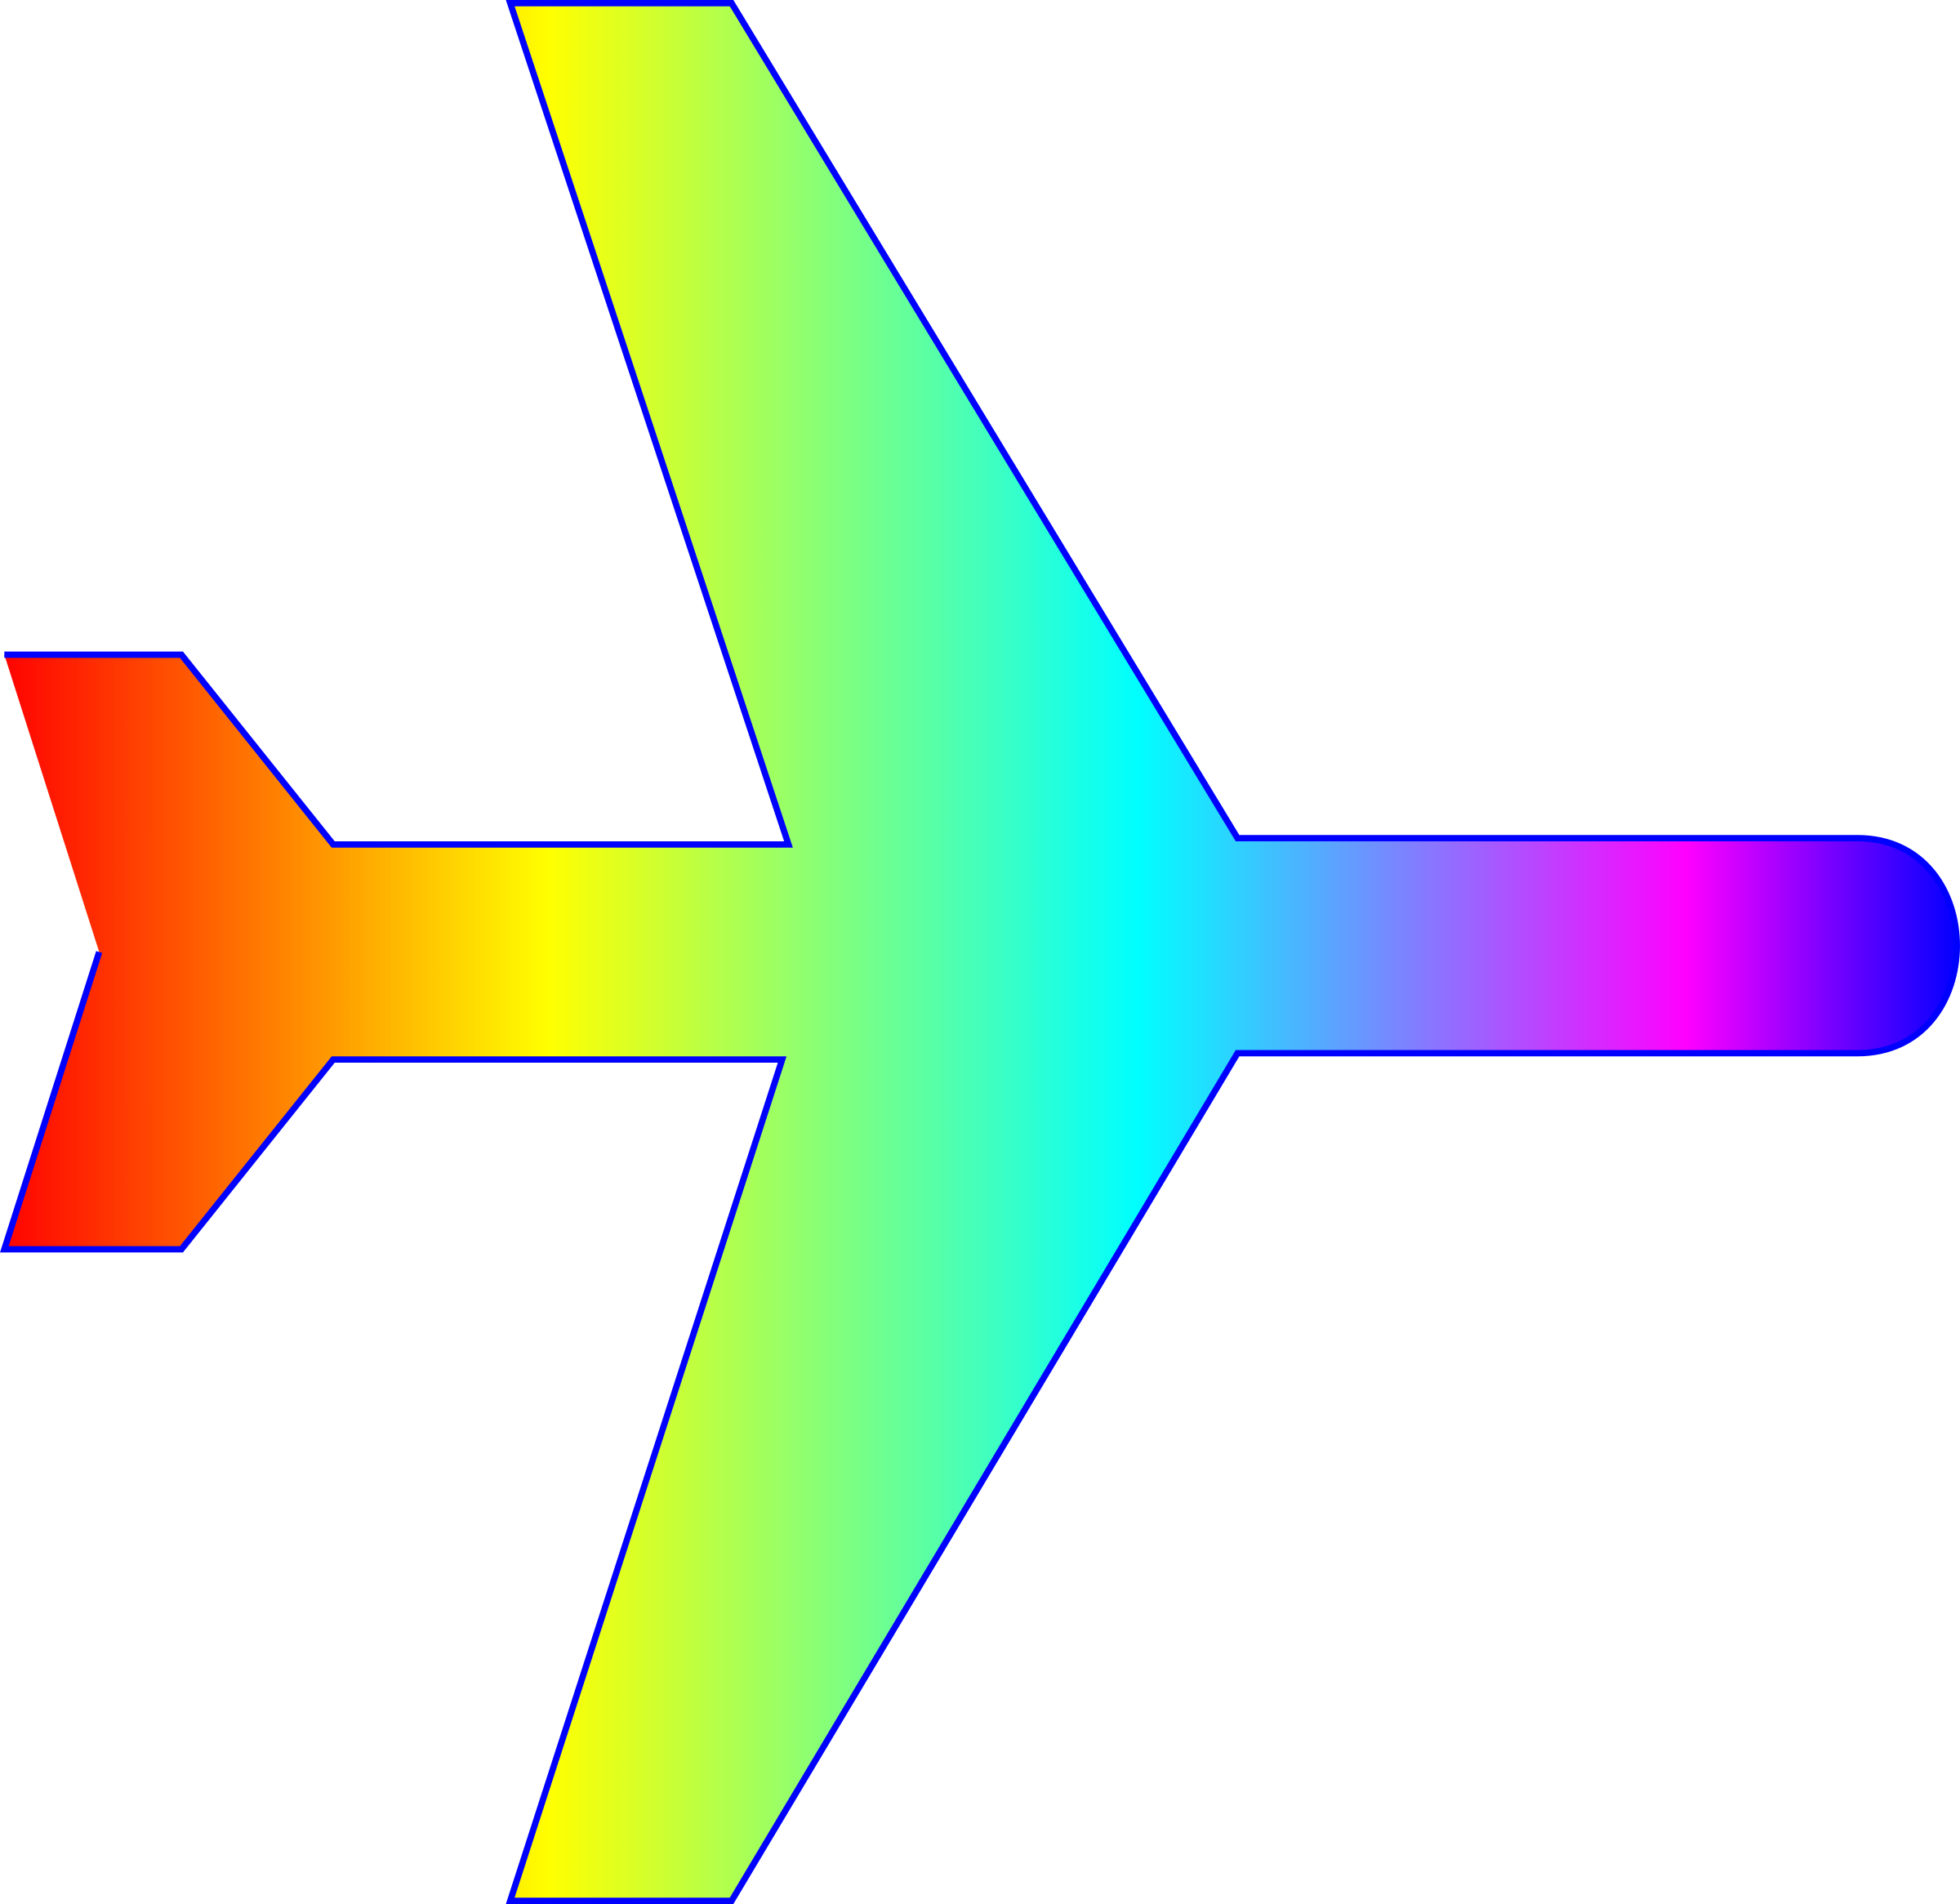 Rainbow gradient png. Clipart airplane silhouette with